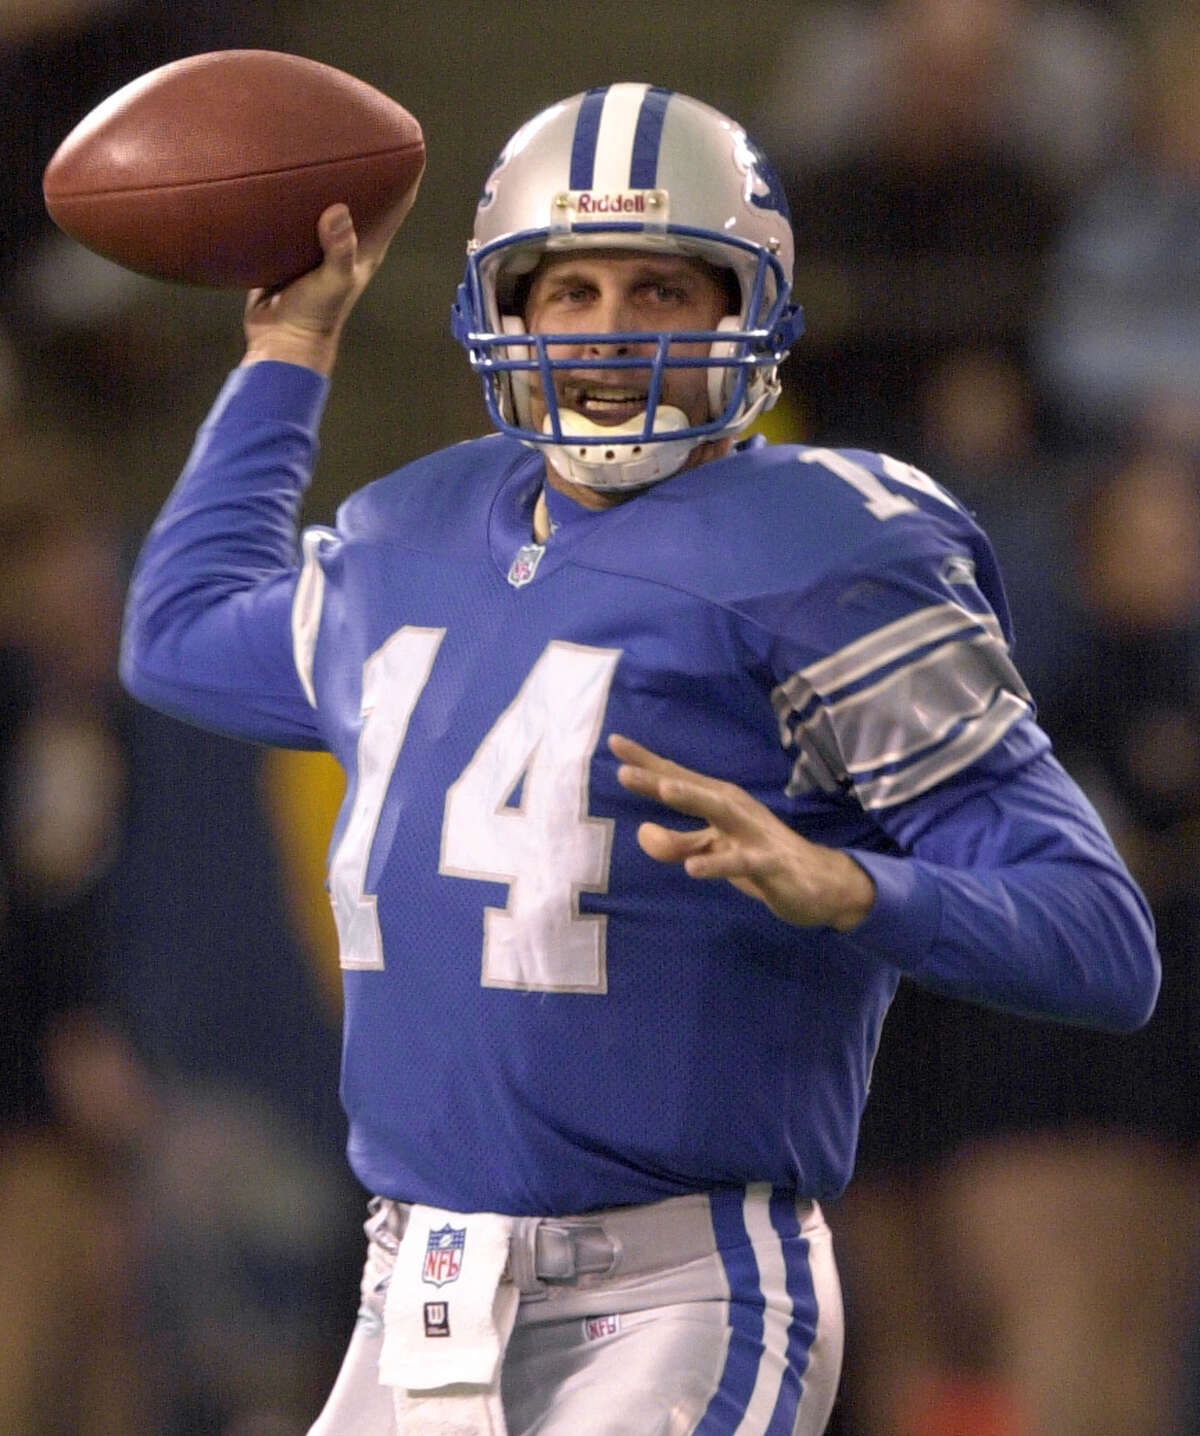 Detroit Lions quarterback Ty Detmer (14) throws against the Dallas Cowboys in the second quarter at the Silverdome in Pontiac, Mich., Sunday, Jan. 6, 2001. Detmer was 24-of-40 for 242 yards with two touchdowns and no interceptions in the Lions' 15-10 win. (AP Photo/Paul Sancya)